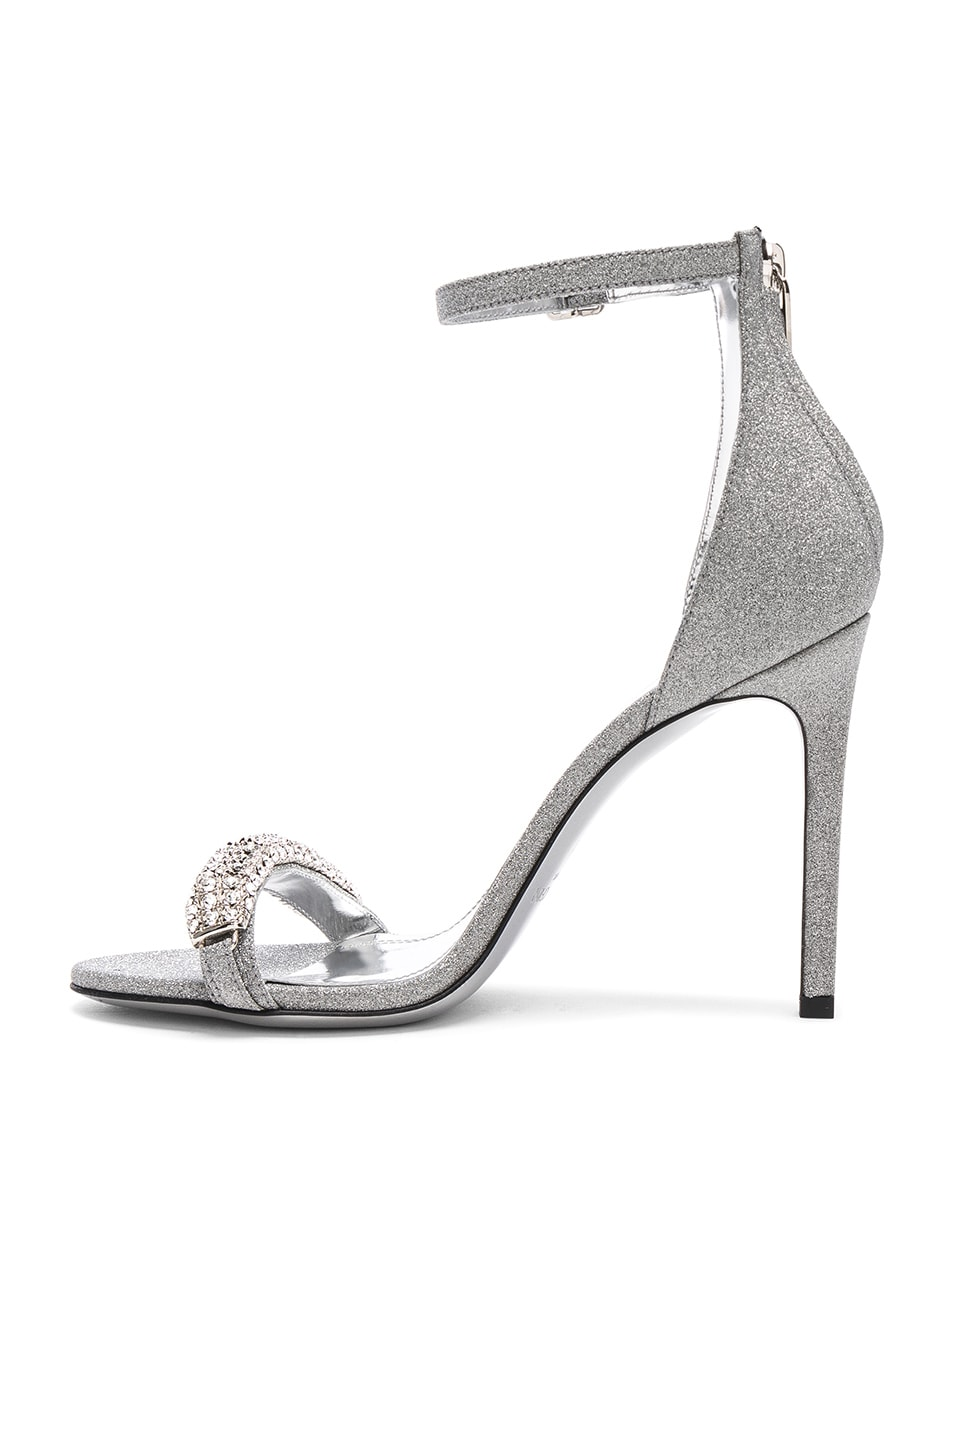 Image 5 of CALVIN KLEIN 205W39NYC Camelle Diamond & Swarovski Embellished Sandals in Silver